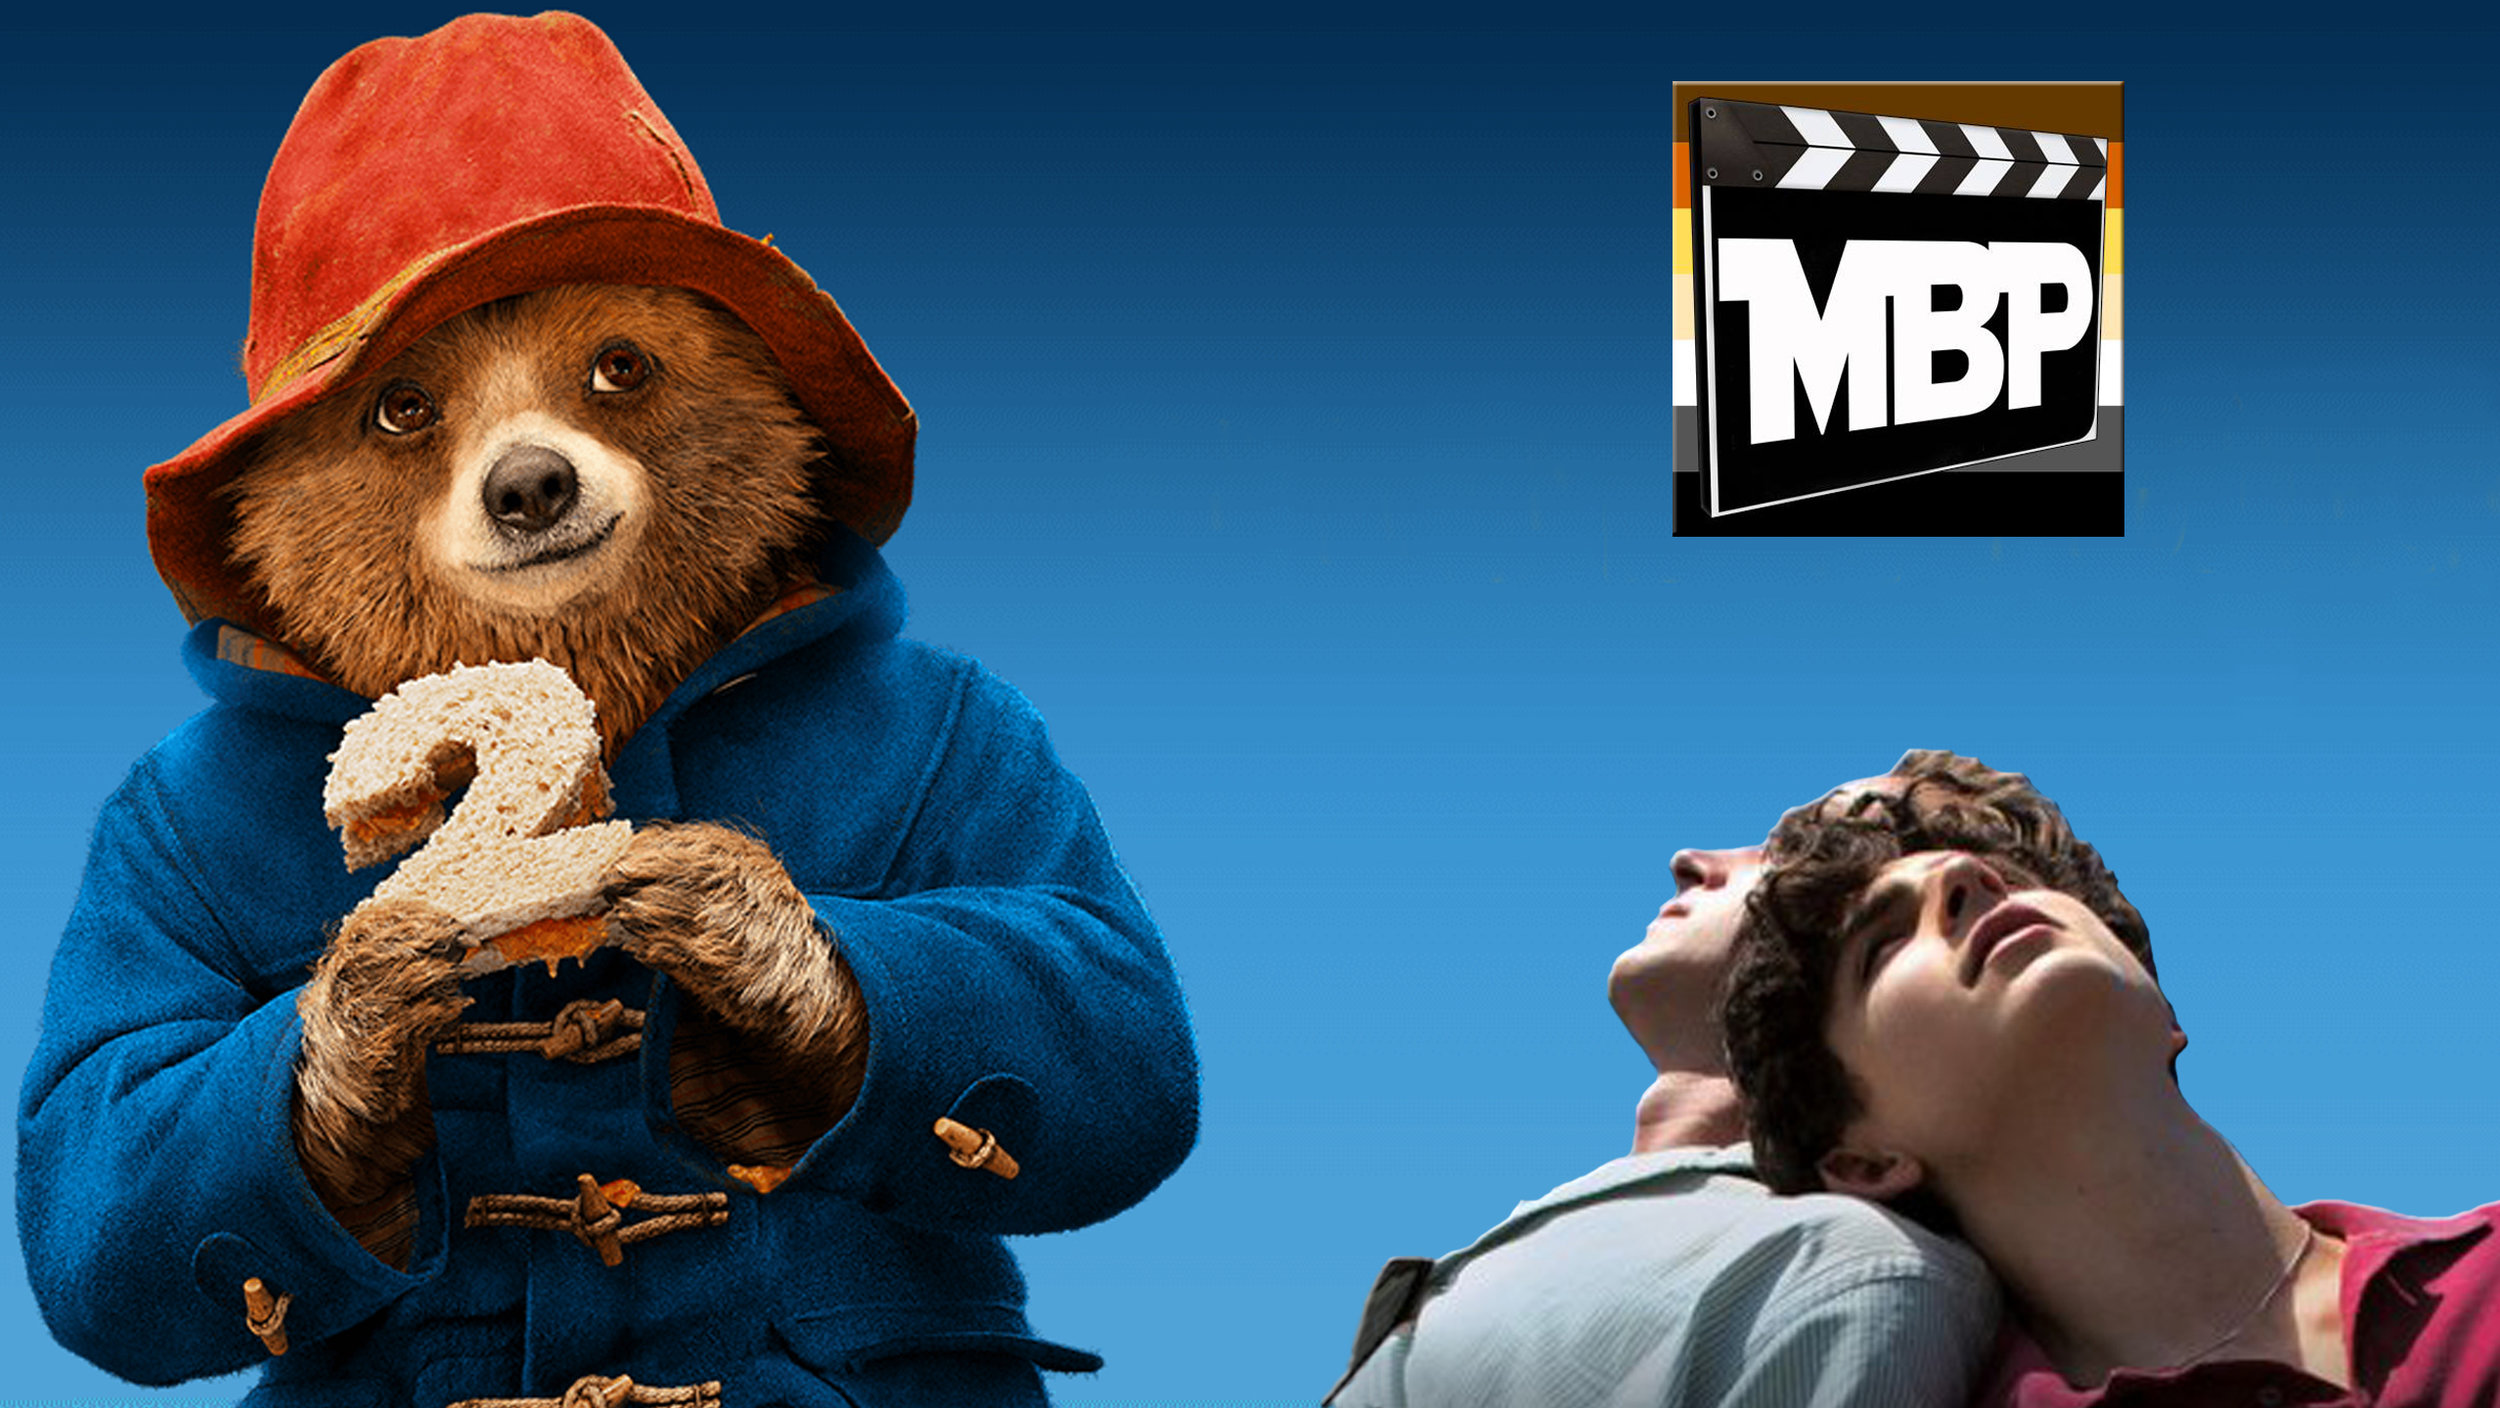 MBP e268 - 'Paddington 2' and 'Call Me By Your Name' (1/26/18)    This week, our podcast has four bears - Brad, Jim, Will, and Paddington - as we review 'Paddington 2.' We also check in with LGBTQ coming-of-age story 'Call Me By Your Name,' which has garnered 4 Academy Awards nominations.